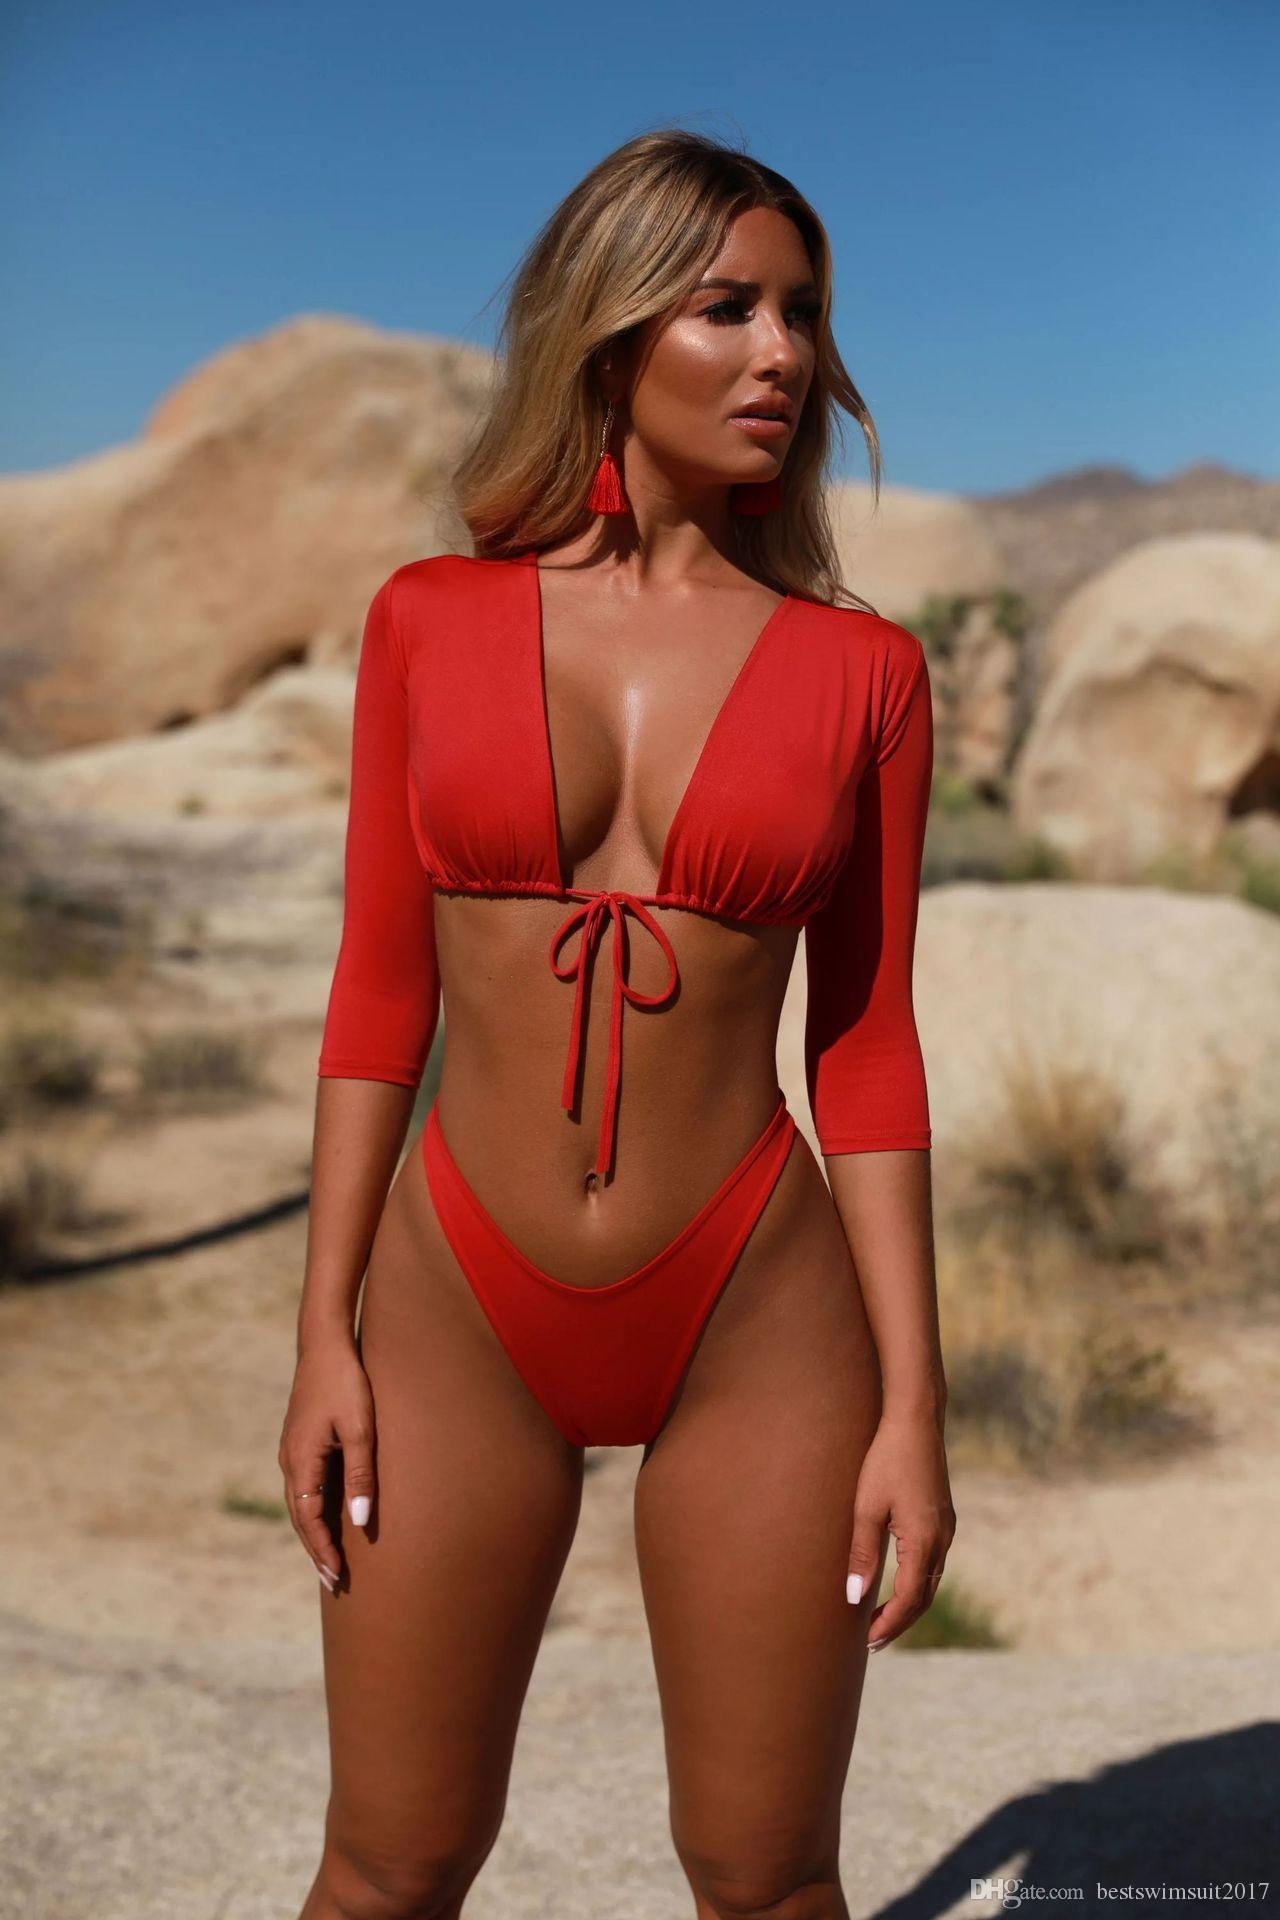 d4d584213e5 Hot Sale Swimwear for Women Bikini Set 2019 Sexy Long Sleeve Bikinis  Swimsuit Woman Beach Biquini Summer High Cut Swim Wear Bathing Suits  Swimwear for Women ...